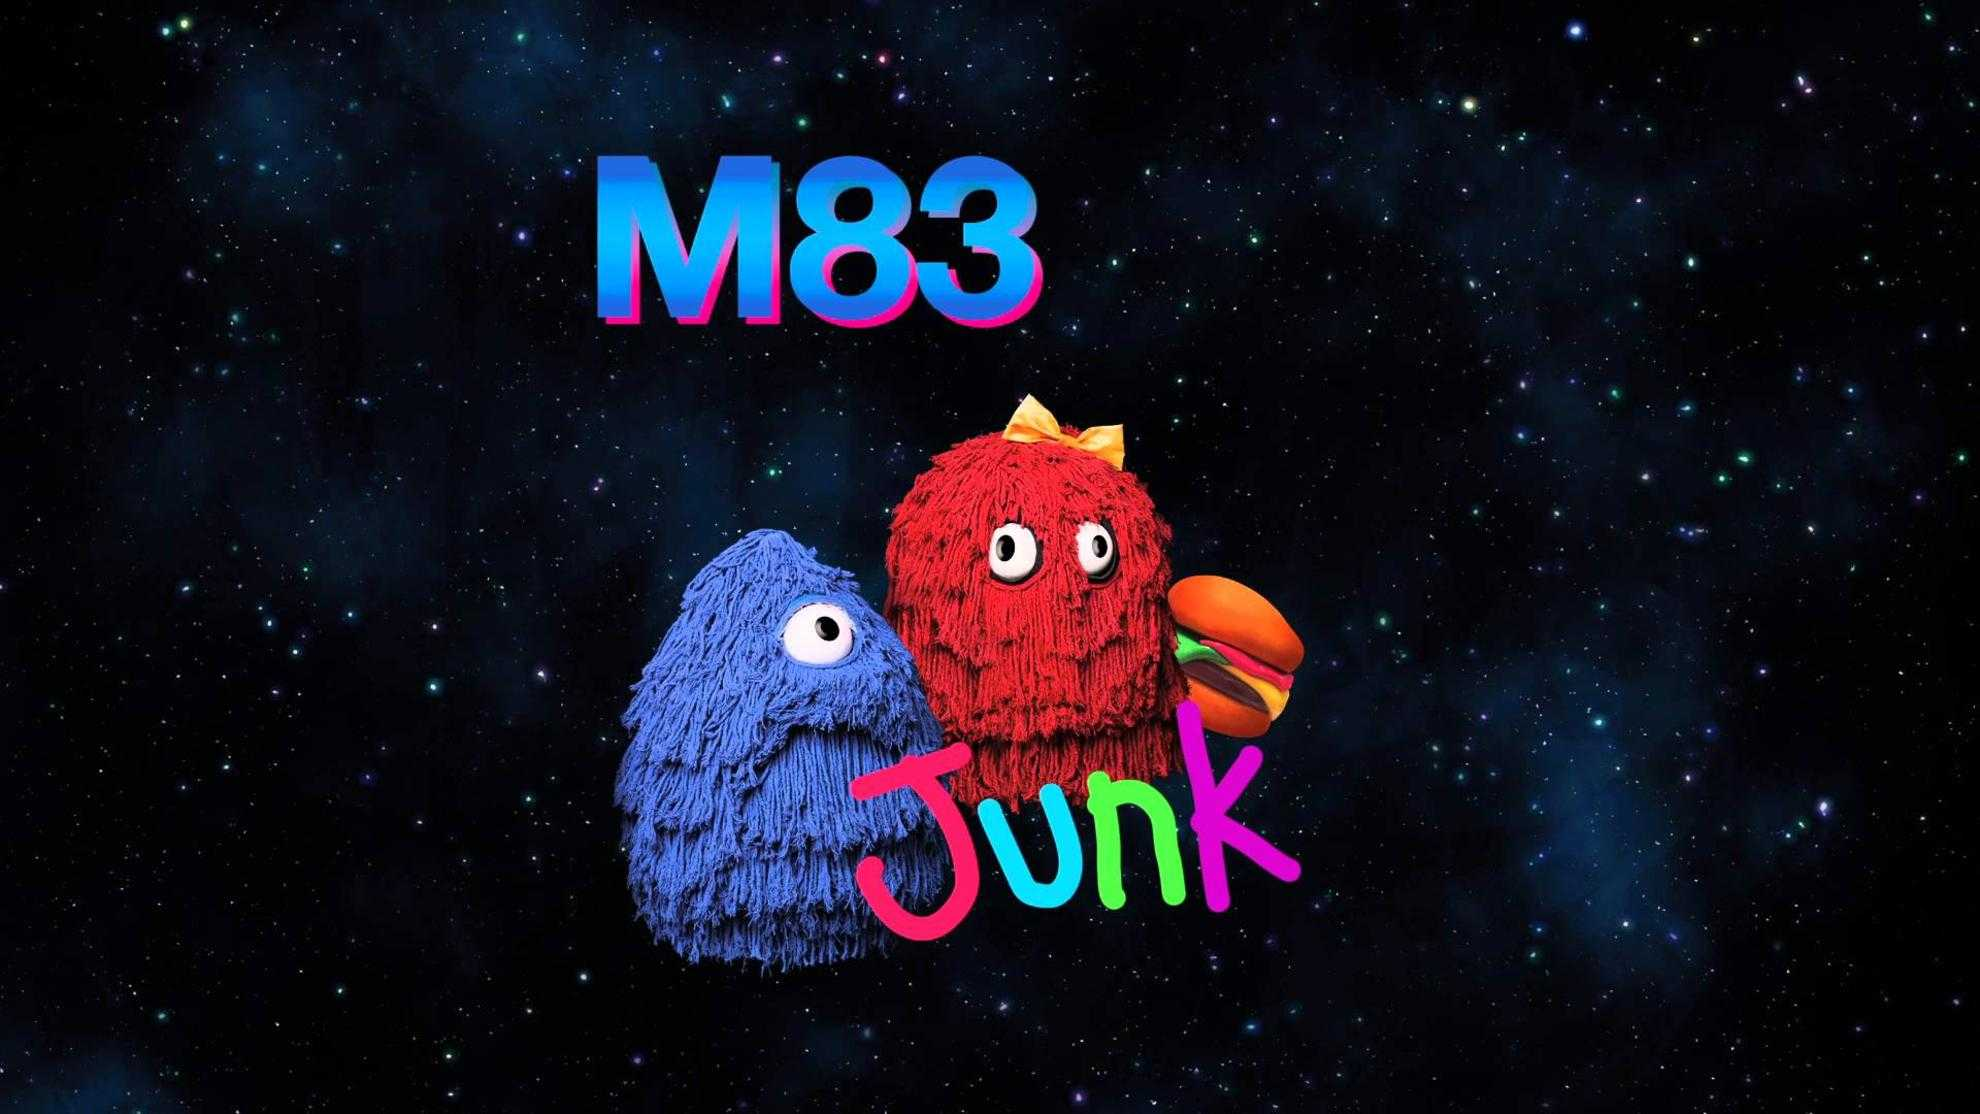 m83 go new song 2016 junk